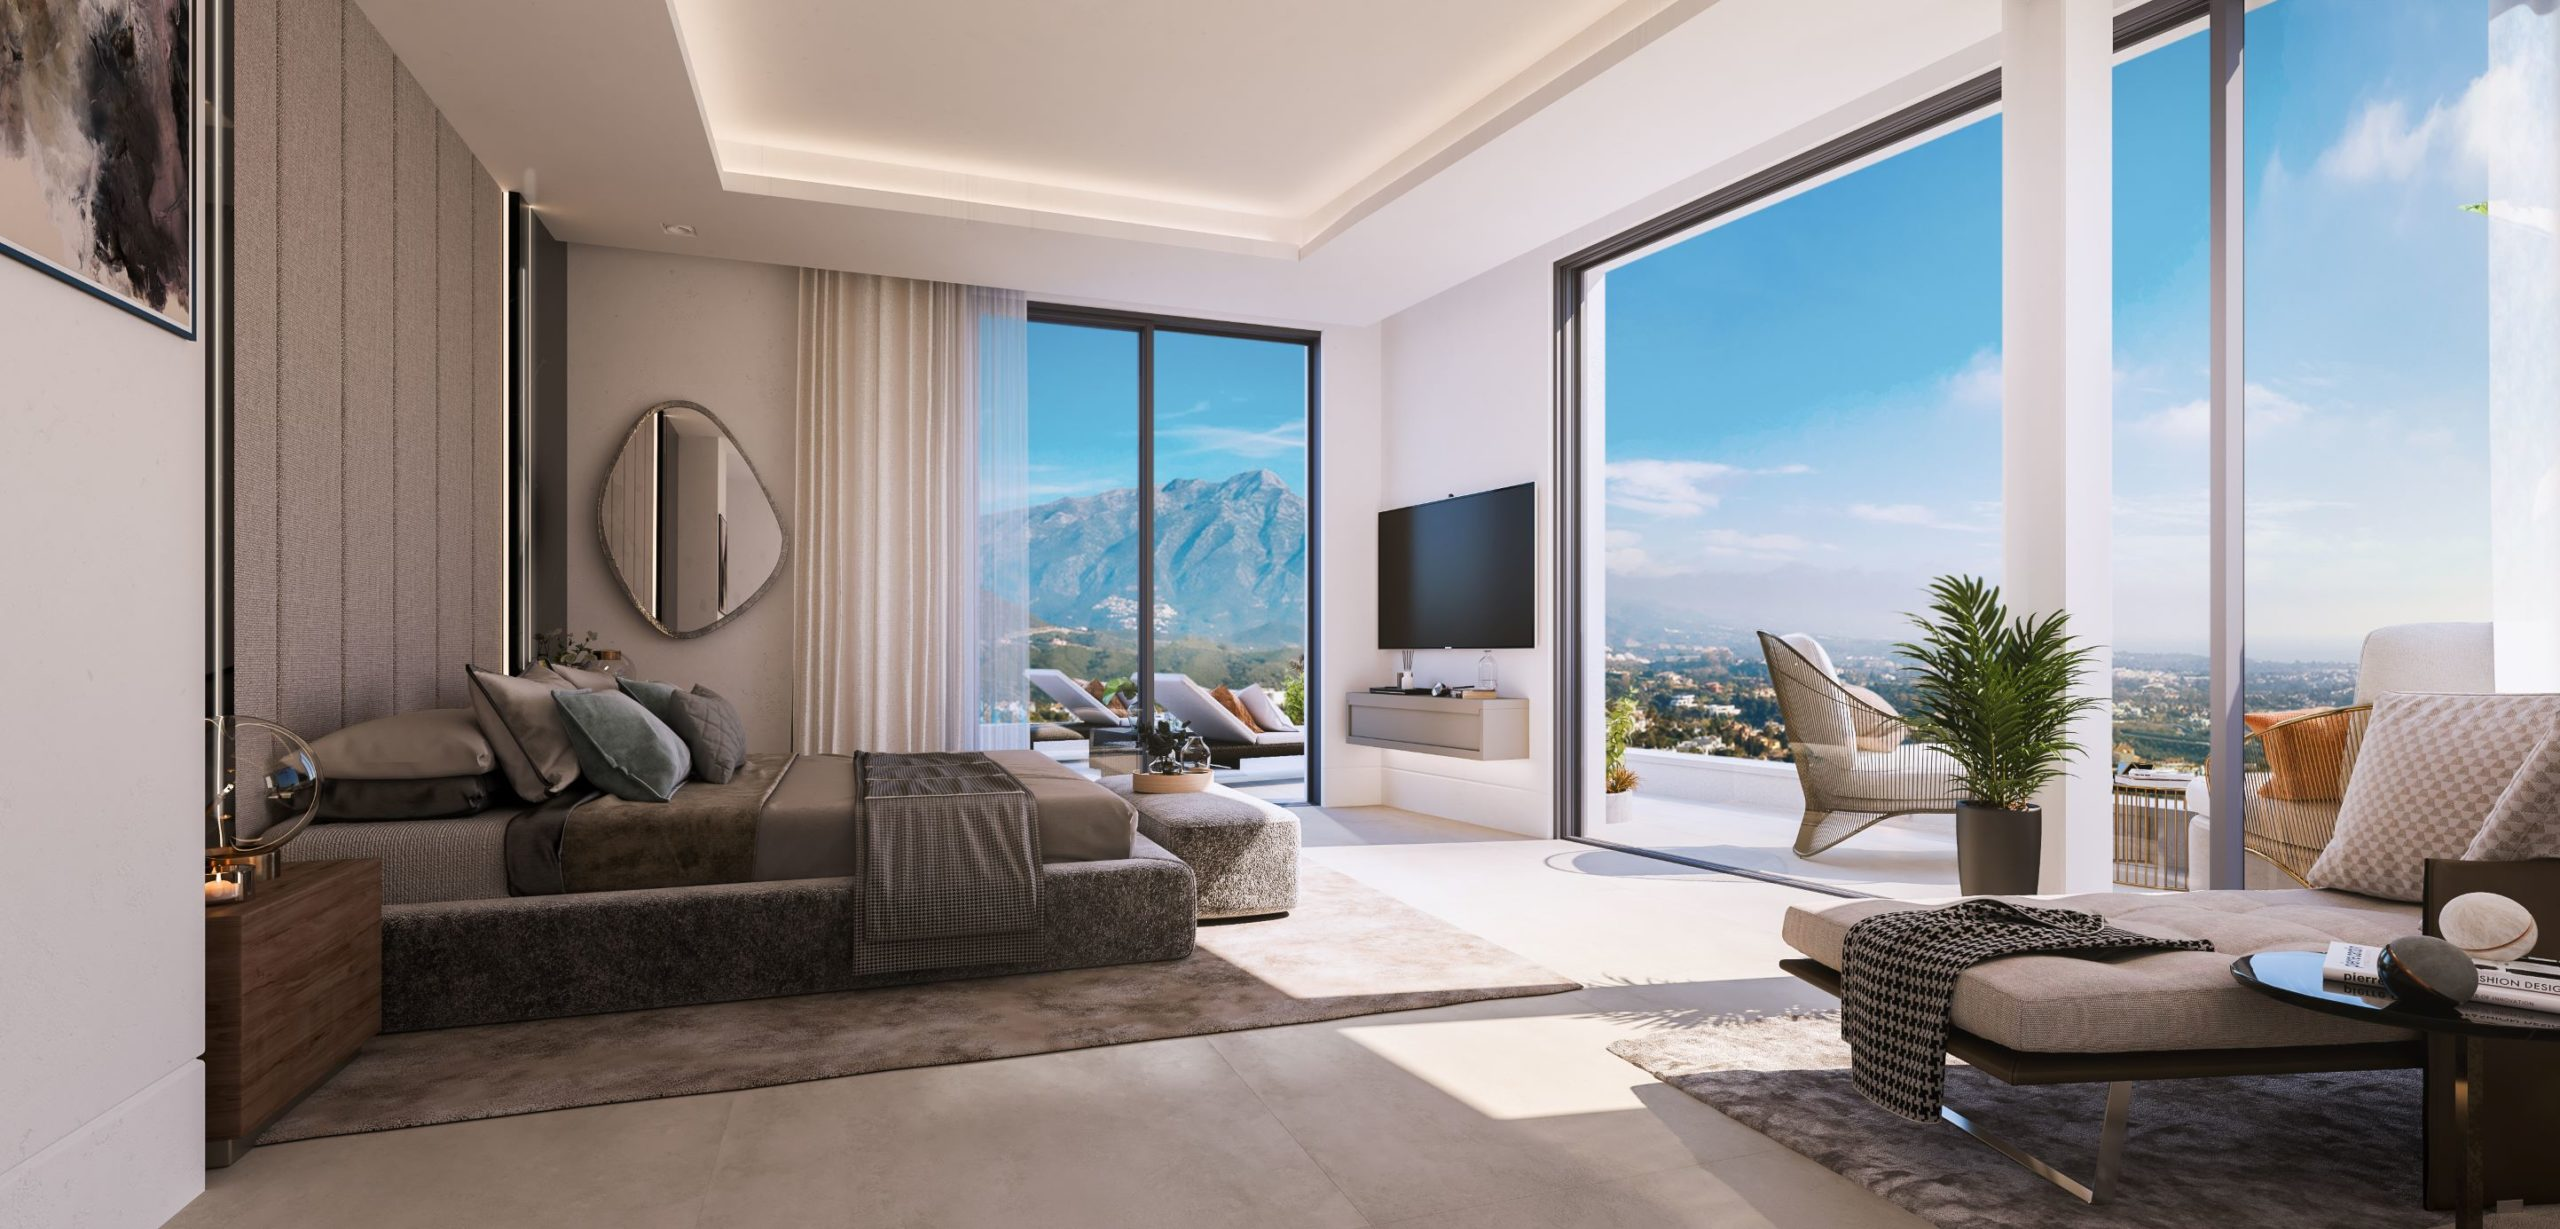 Grand View Marbella Bedroom